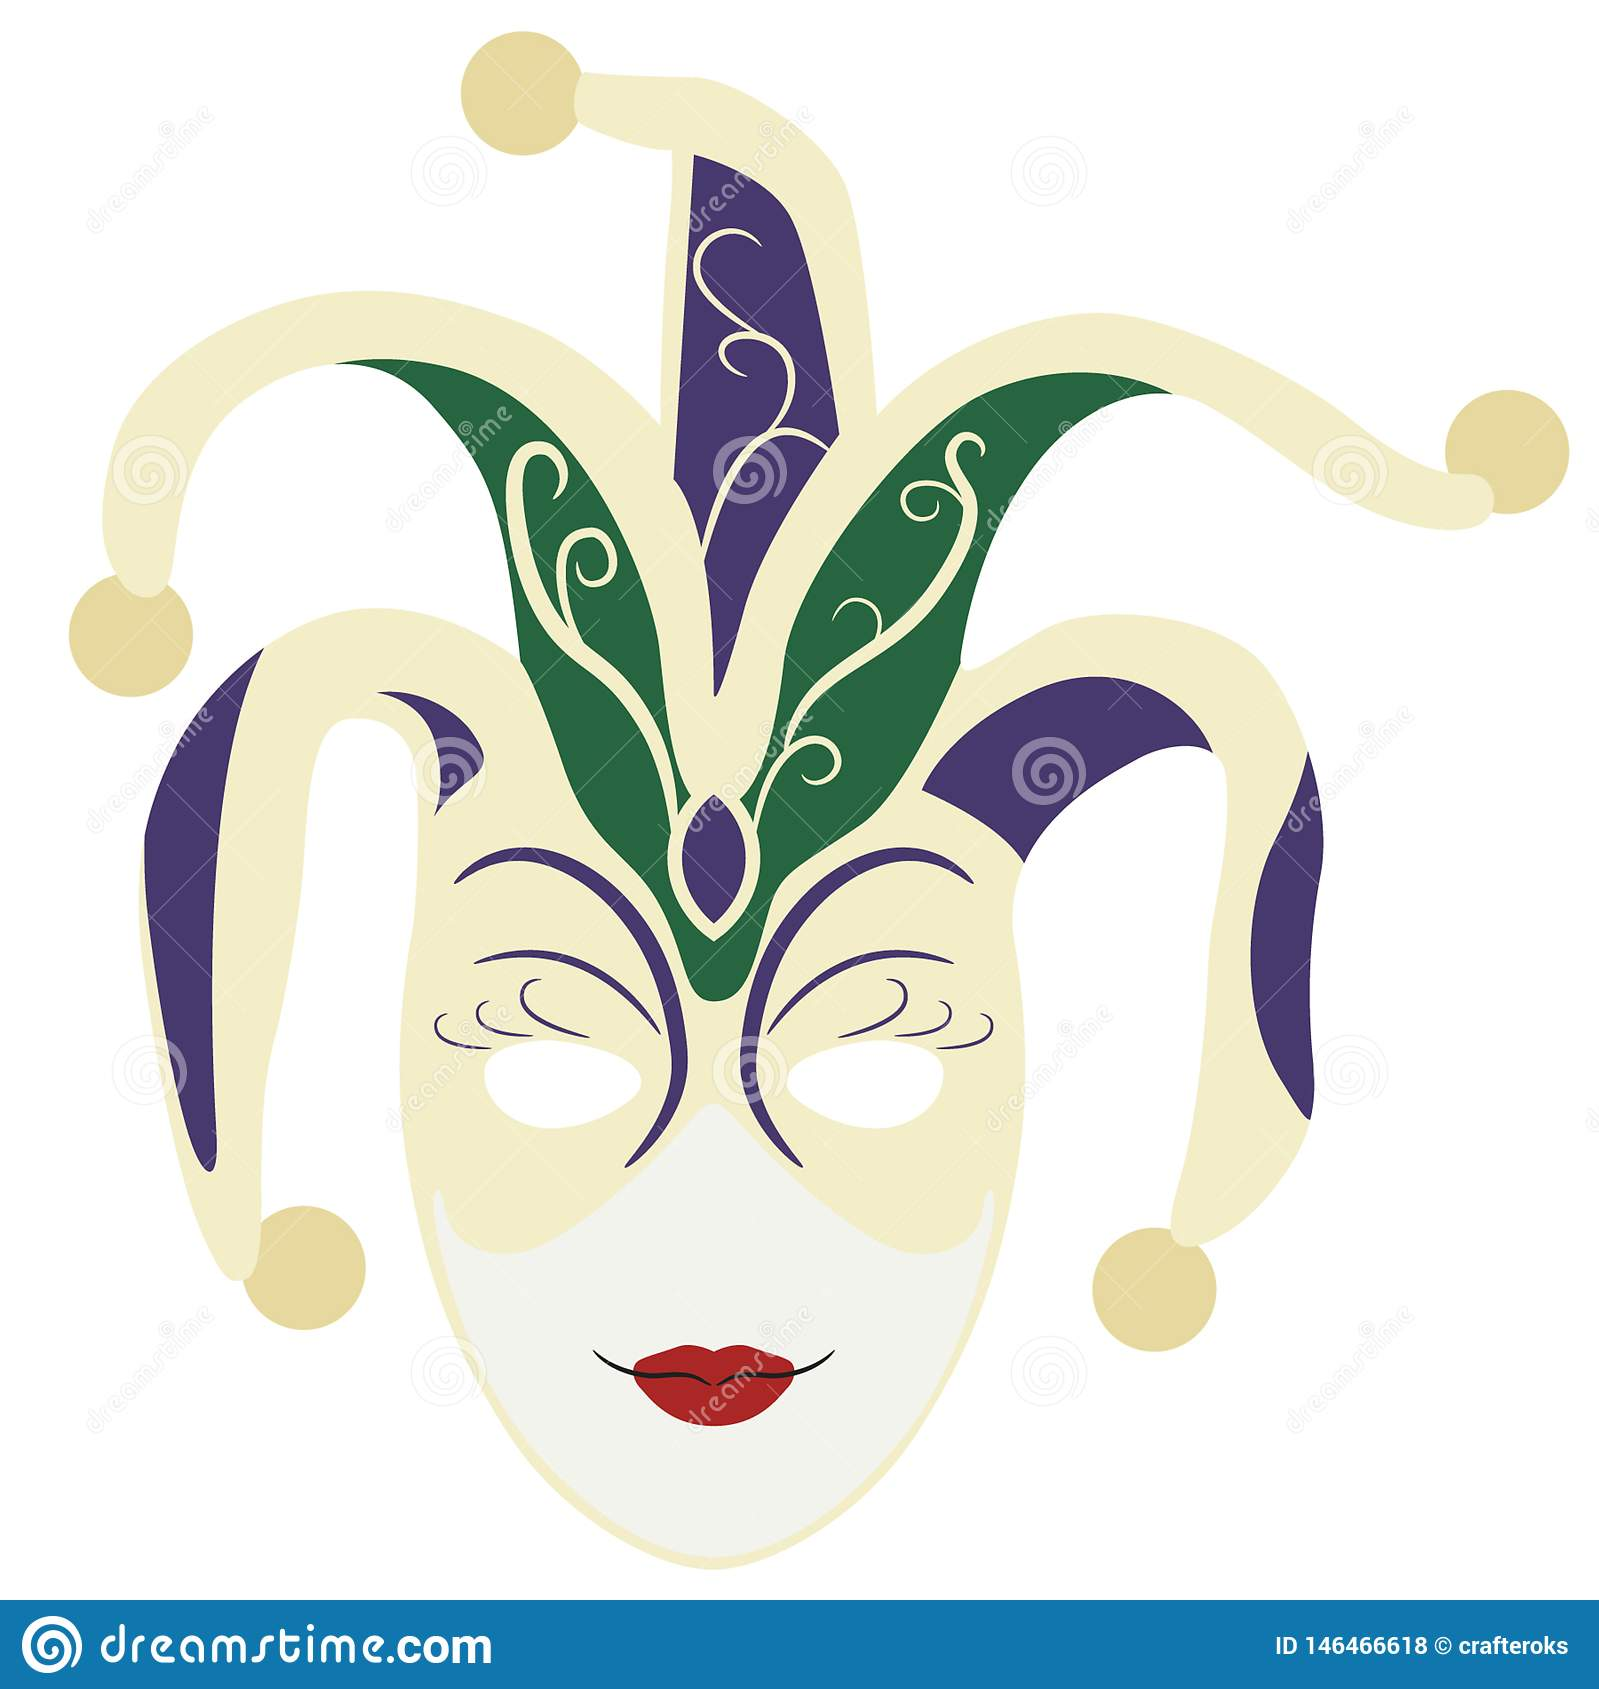 Mardi gras mask Hand drawn, Vector, Eps, Logo, Icon, crafteroks, silhouette Illustration for different uses